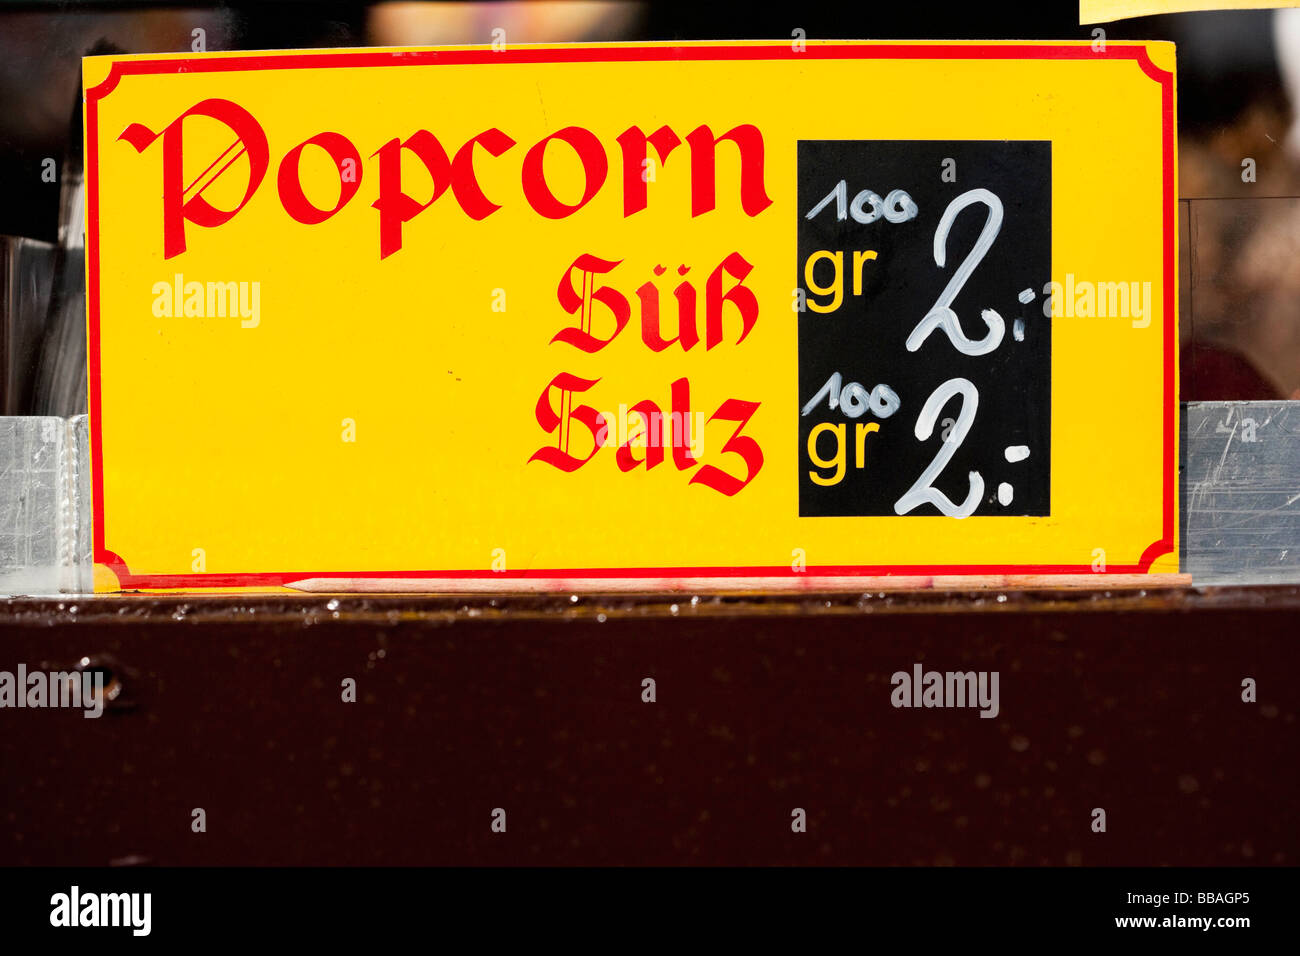 price board popcorn - Stock Image